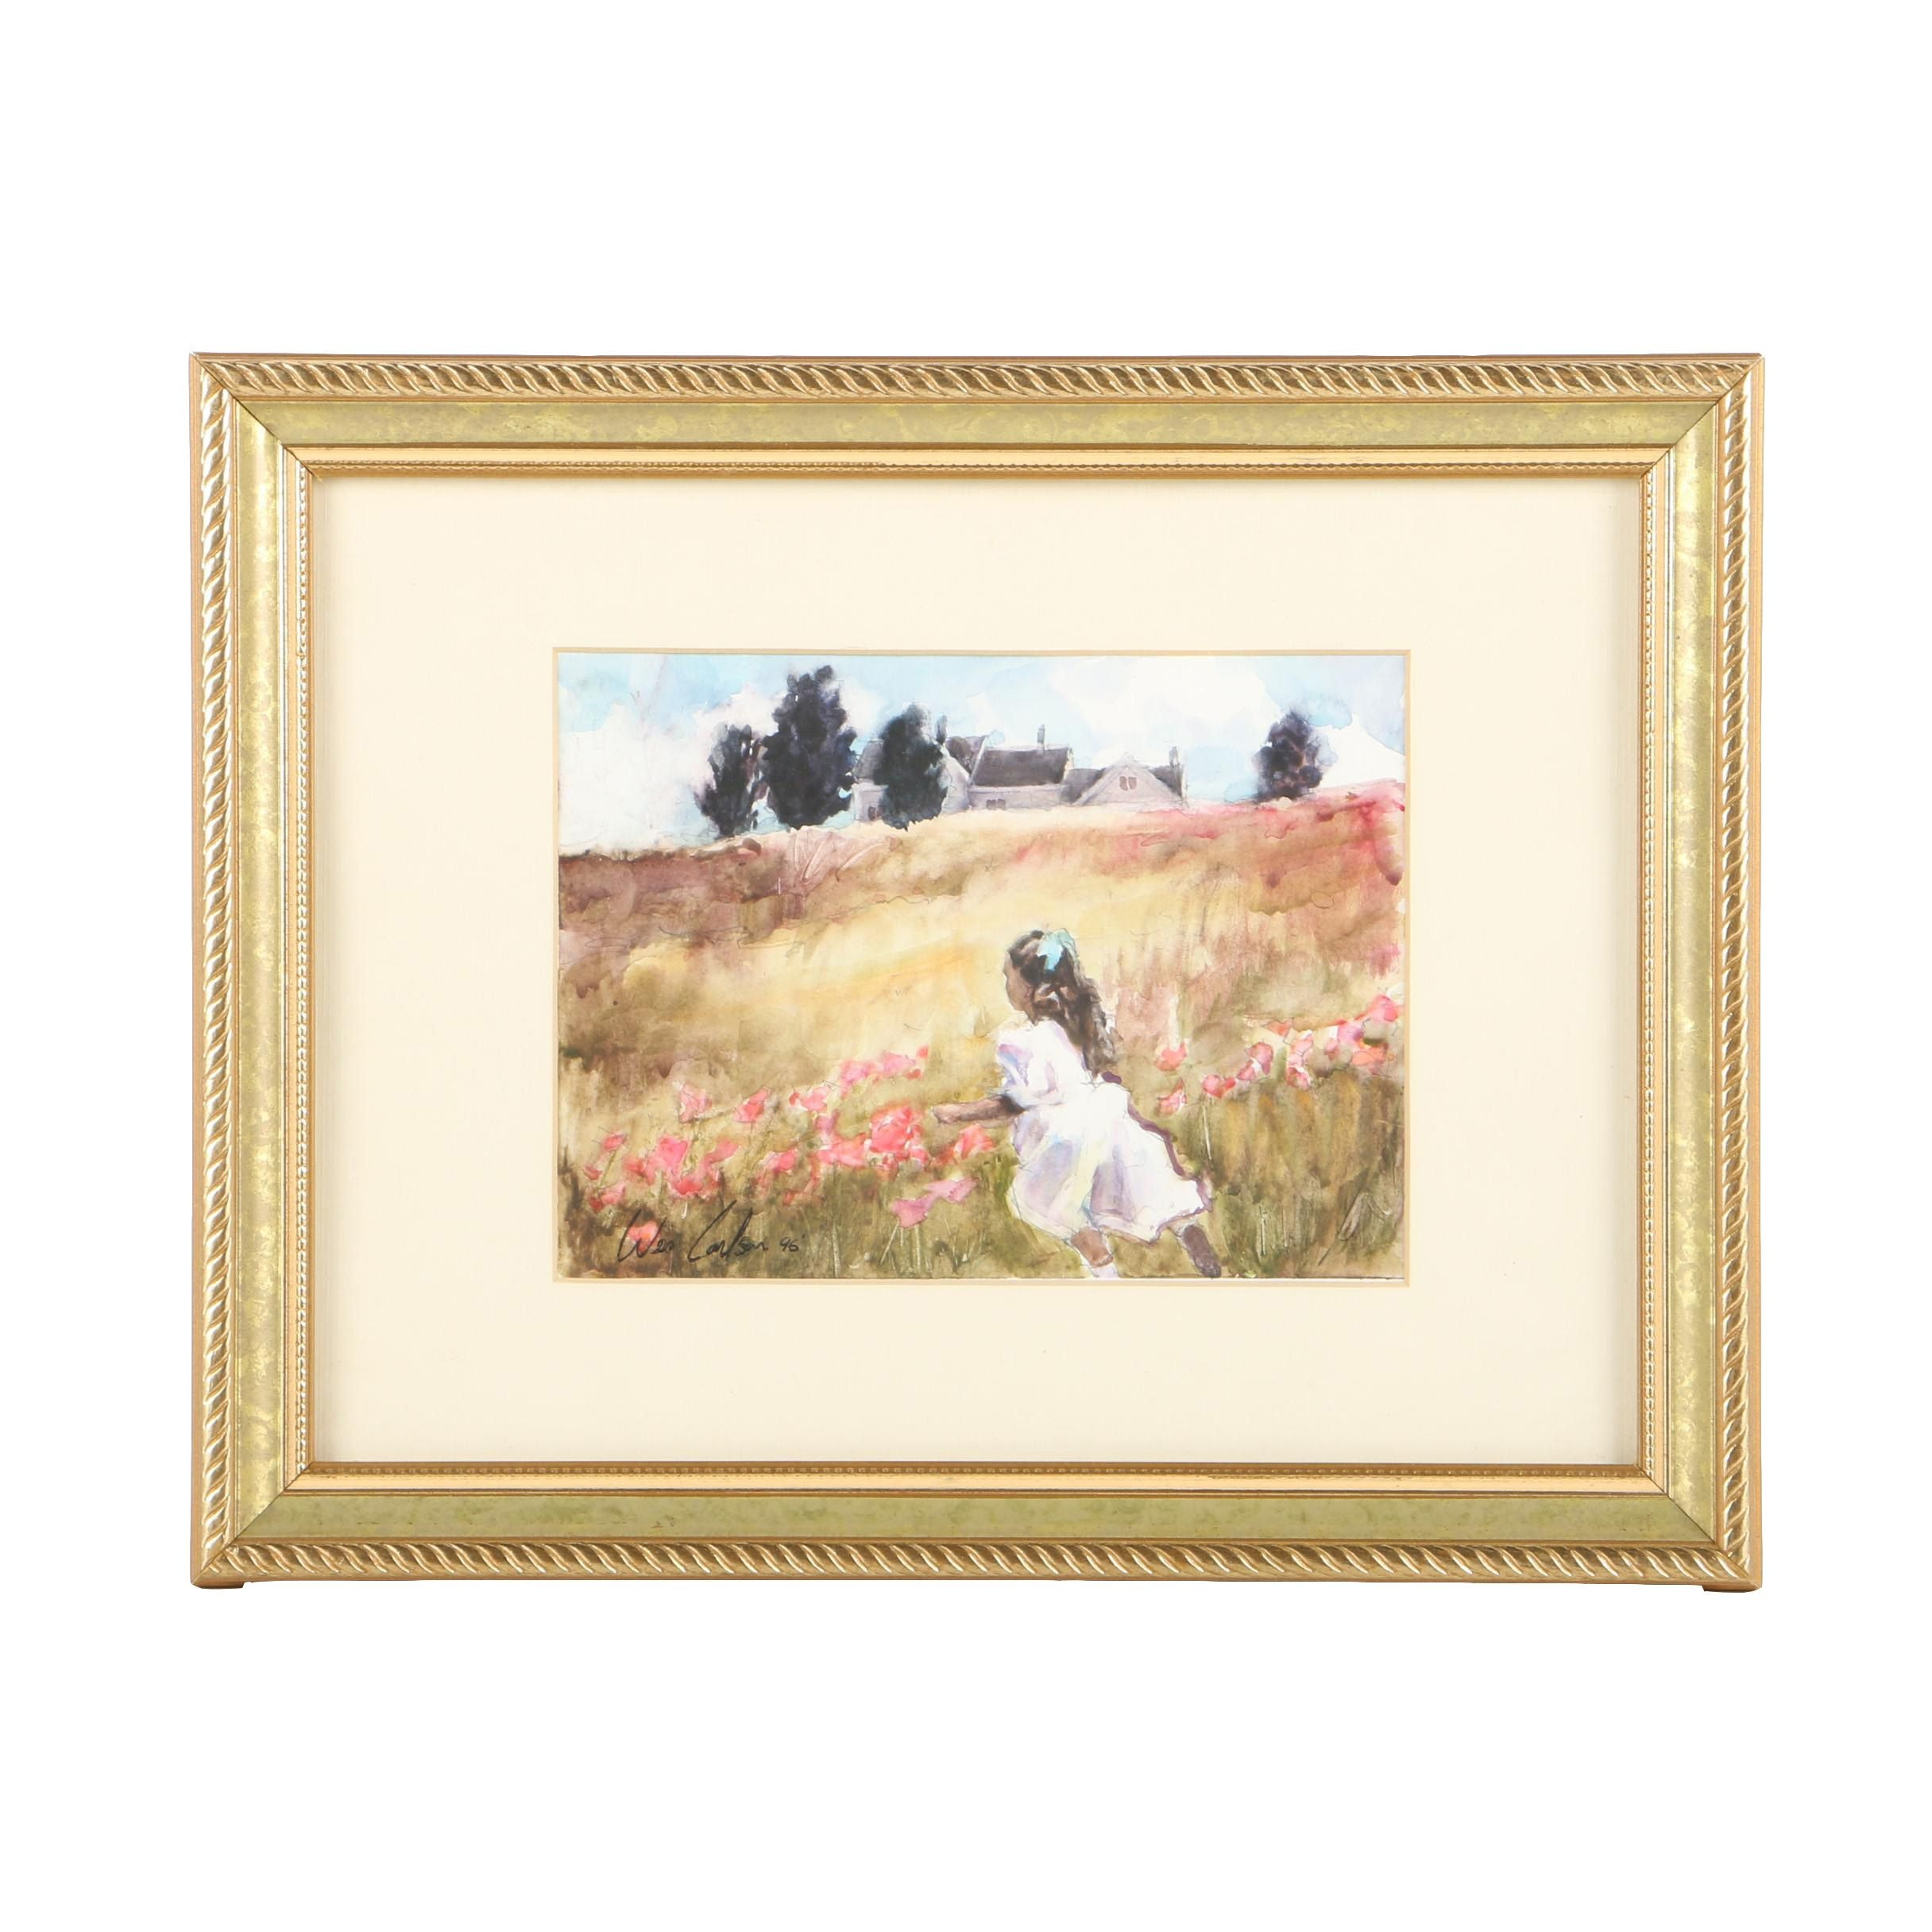 Wes Carlson Watercolor Painting on Paper of Girl in Field